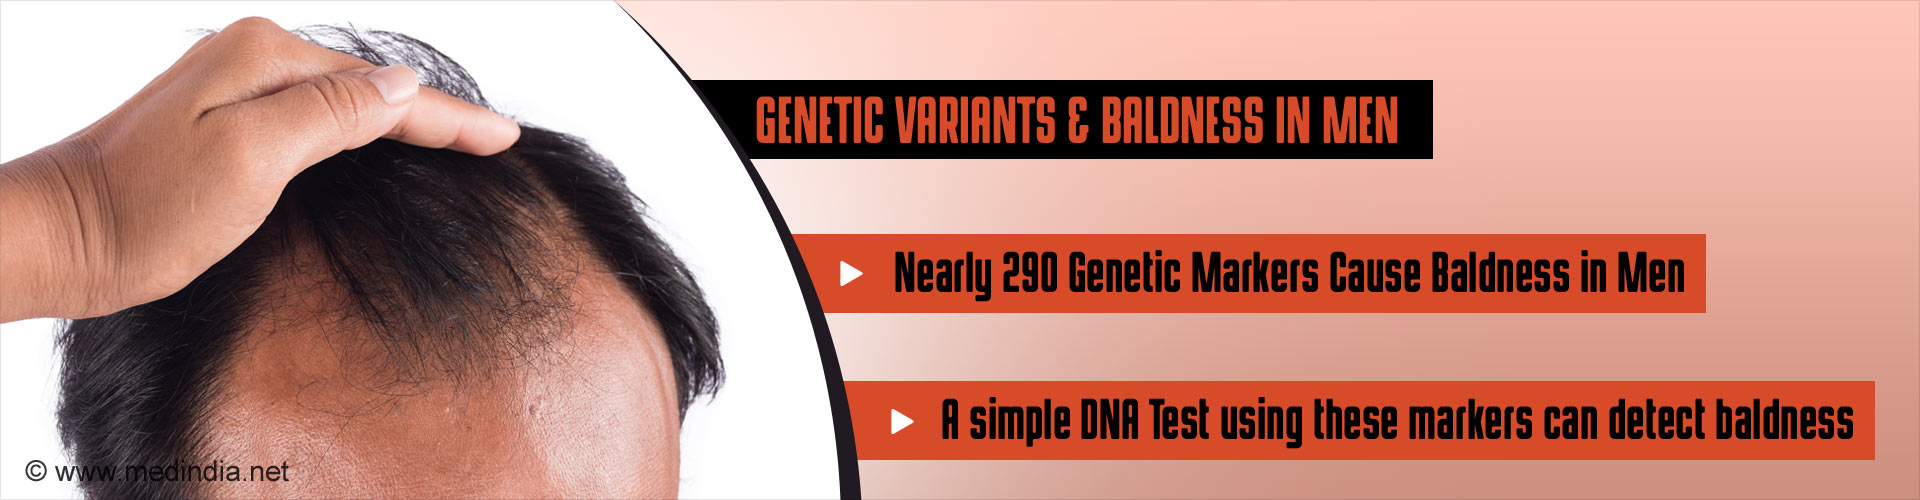 Genetic variants & baldness in men - Nearly 290 genetic markers cause baldness in men - A simple DNA ysing these markers can detect baldness